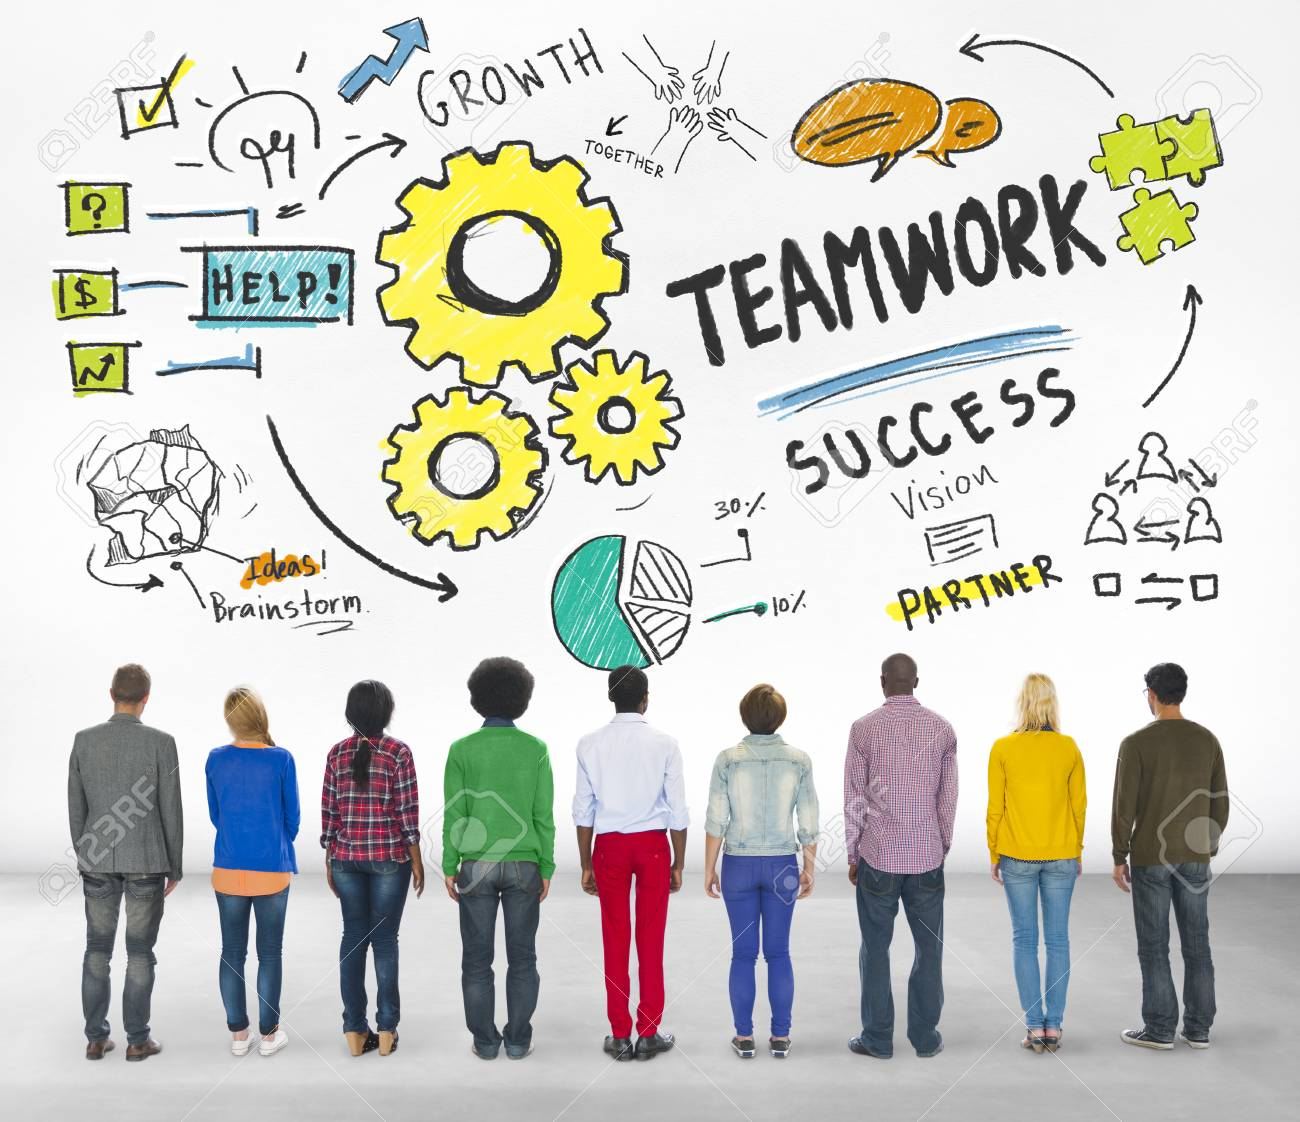 Stock Photo Teamwork Team Together Collaboration Group People Diversity Concept